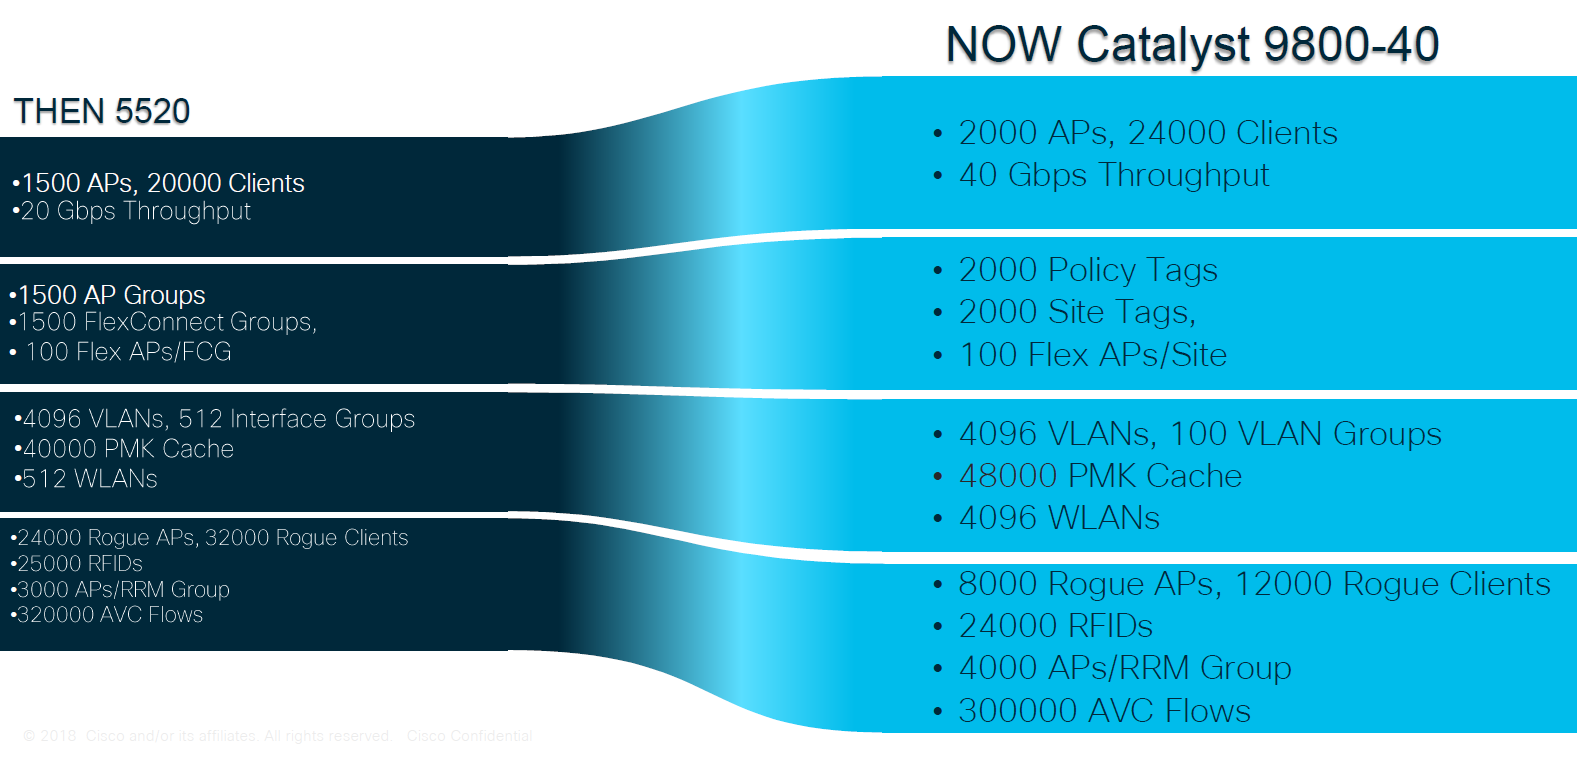 Cisco Catalyst 9800-40 vs Cisco 5520